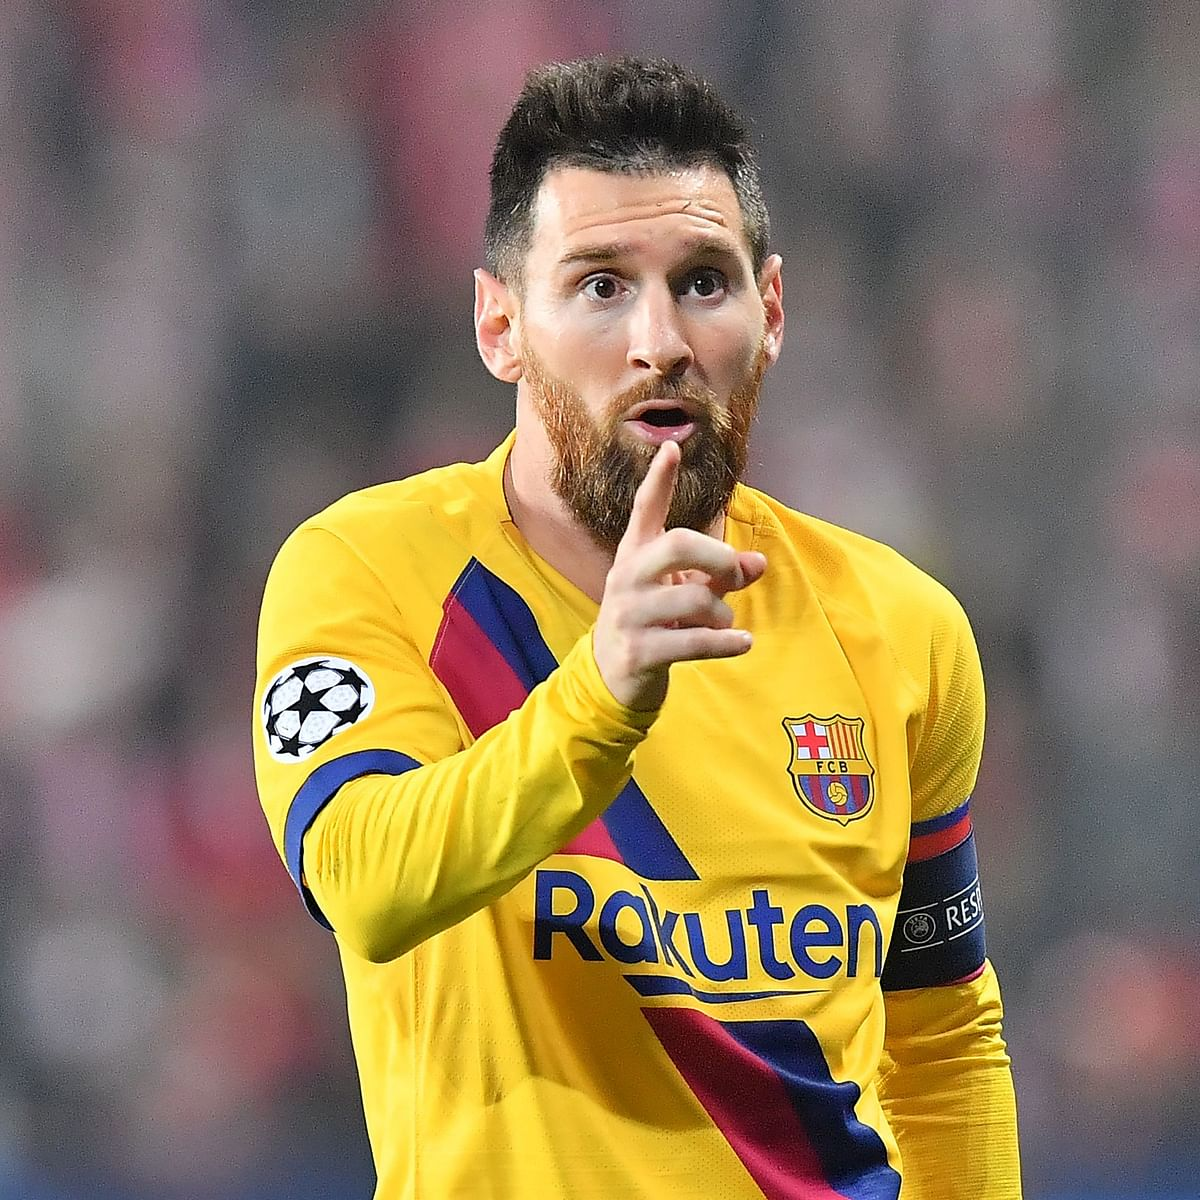 Lionel Messi will stay at Barca for next 4-5 years